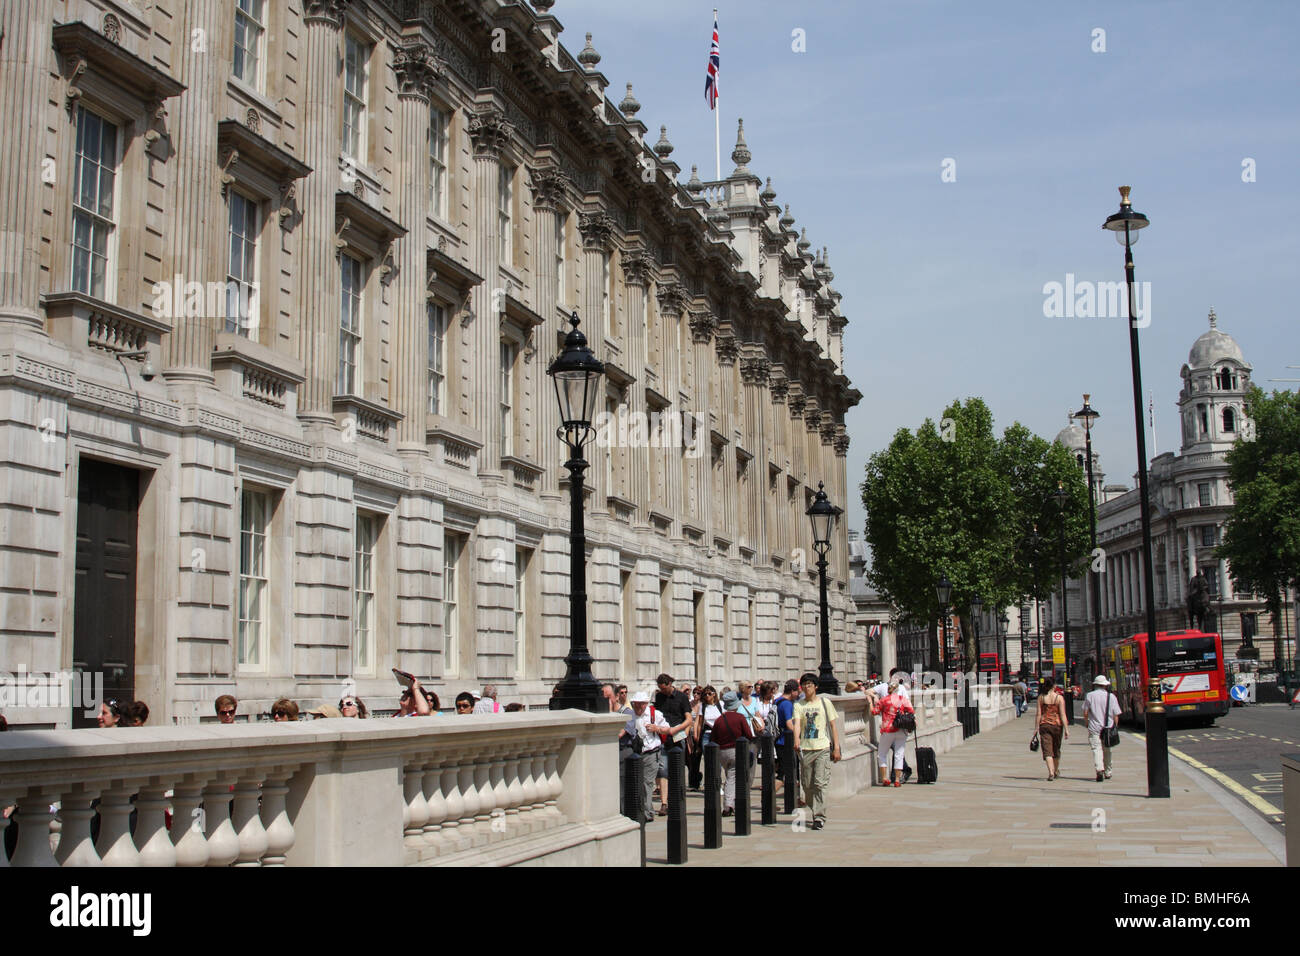 Government buildings on Whitehall, Westminster, London, England, U.K. - Stock Image